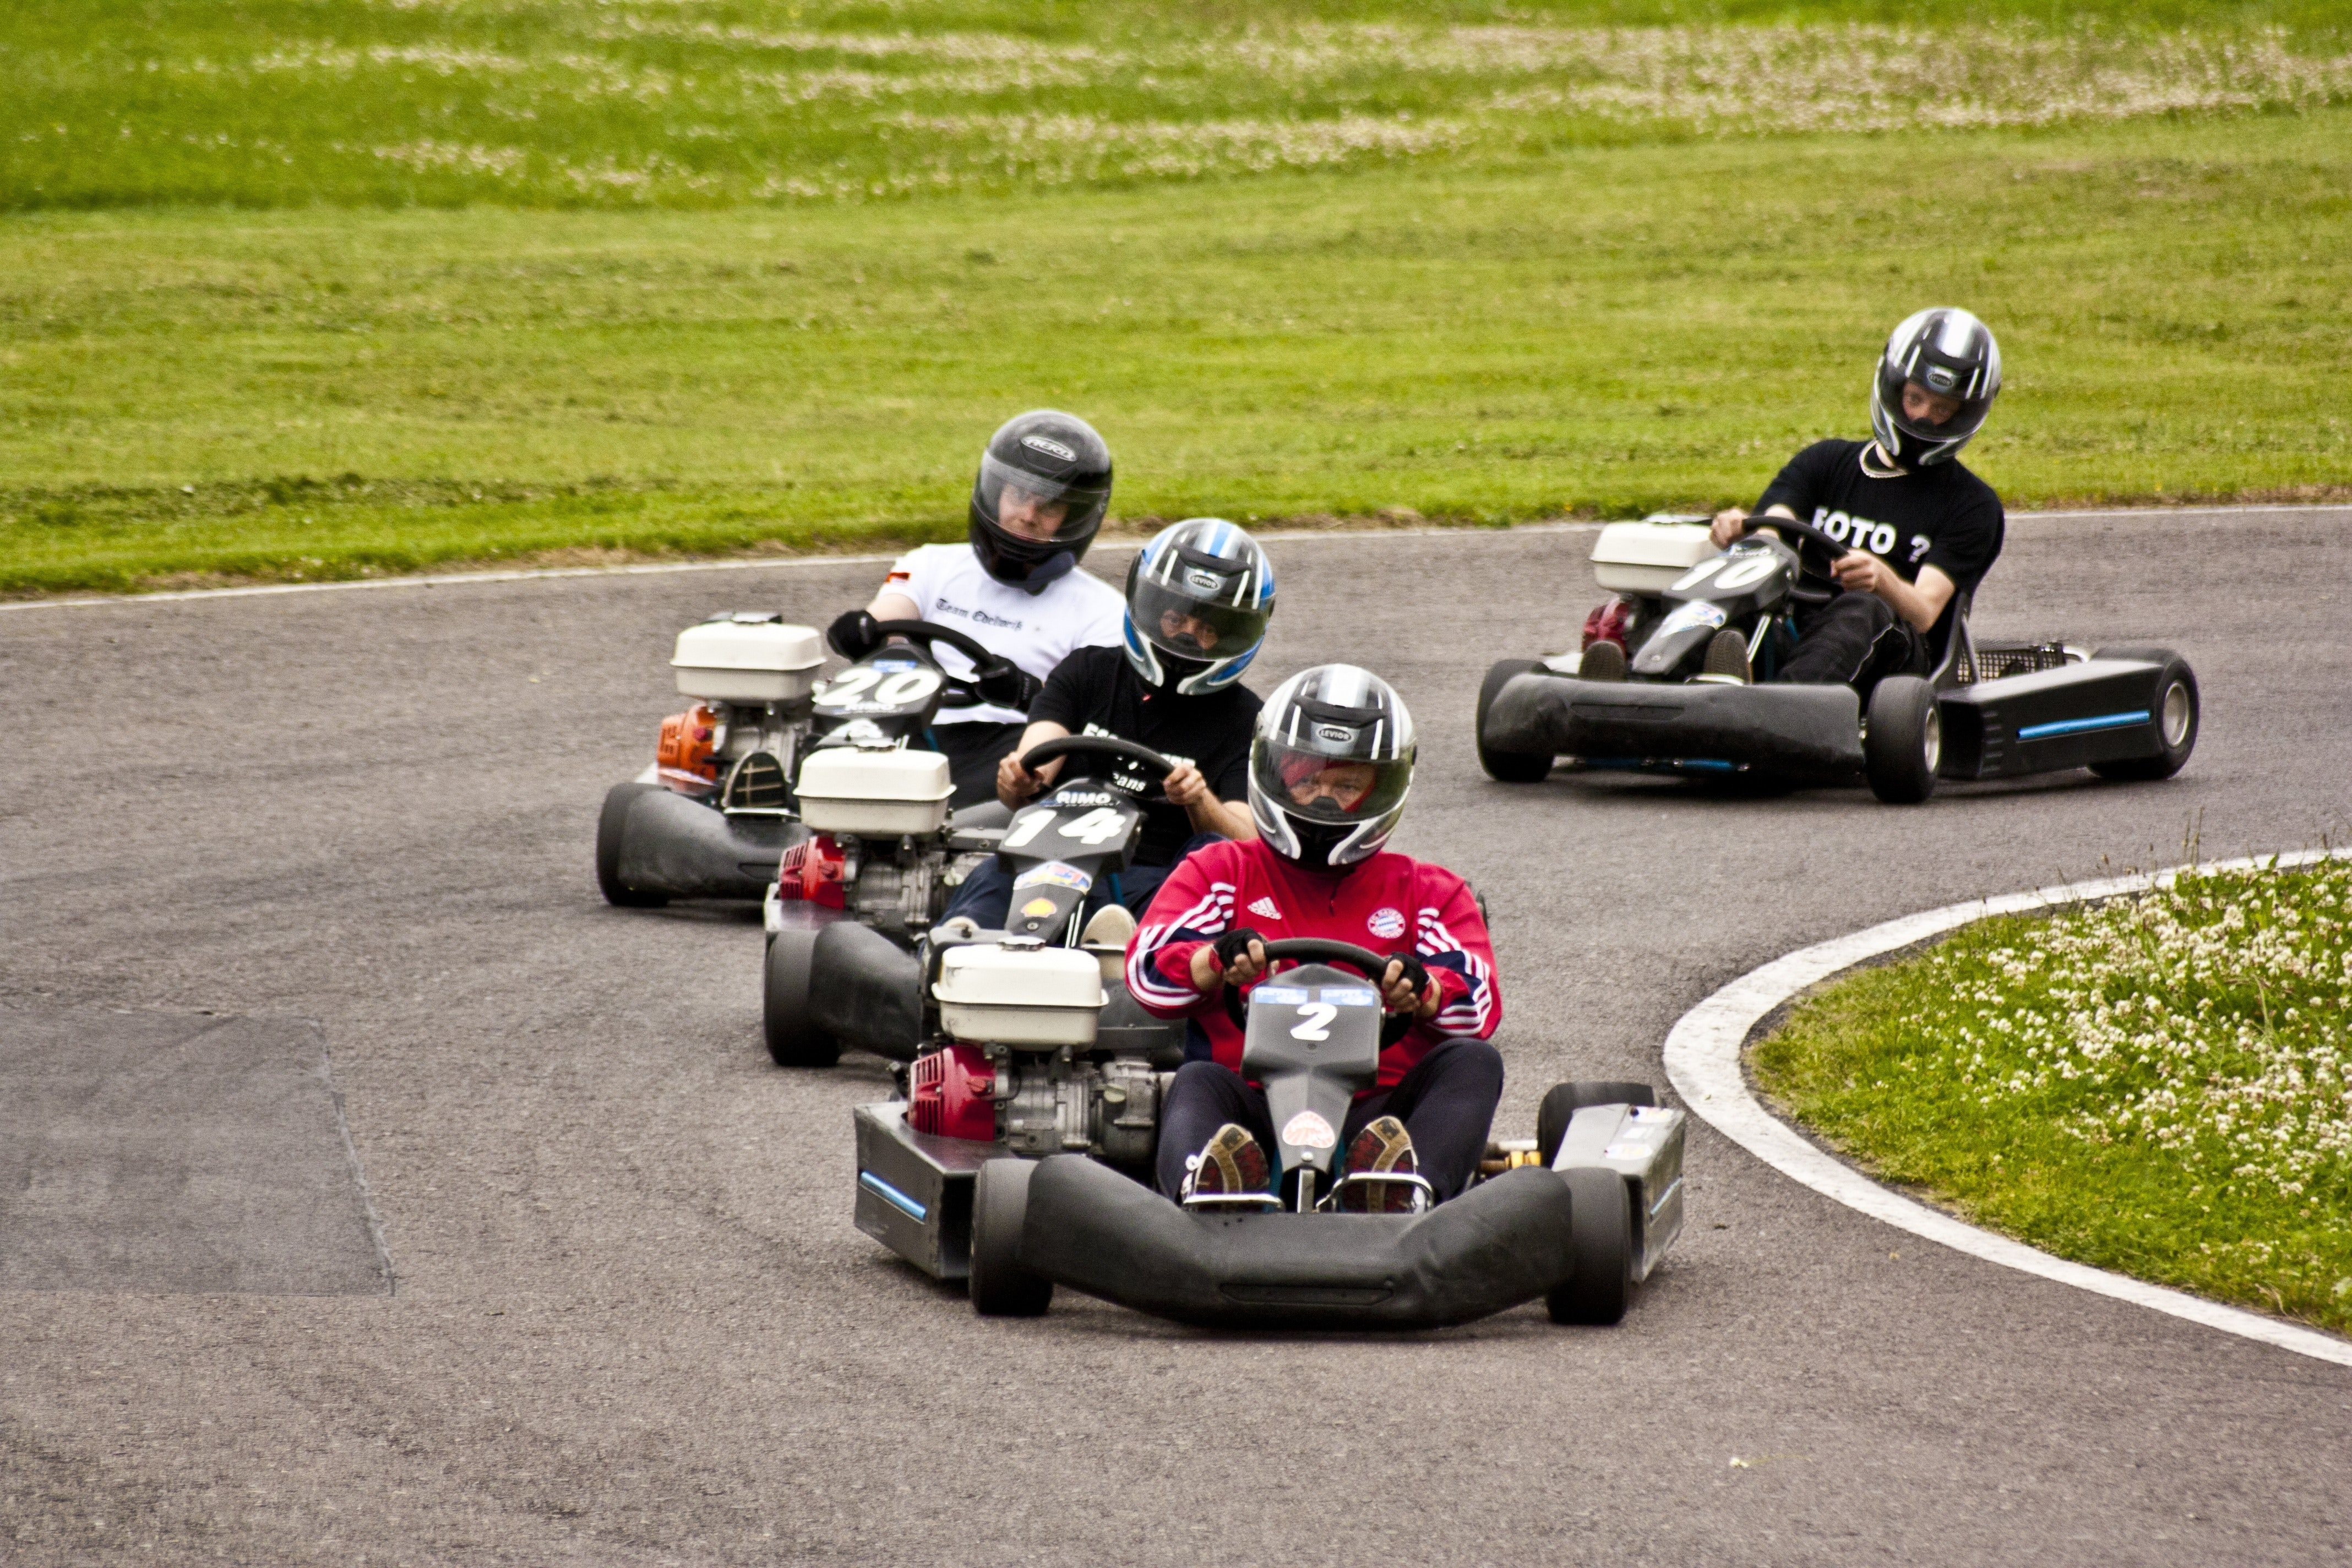 Four people Go-Karting on an outside track